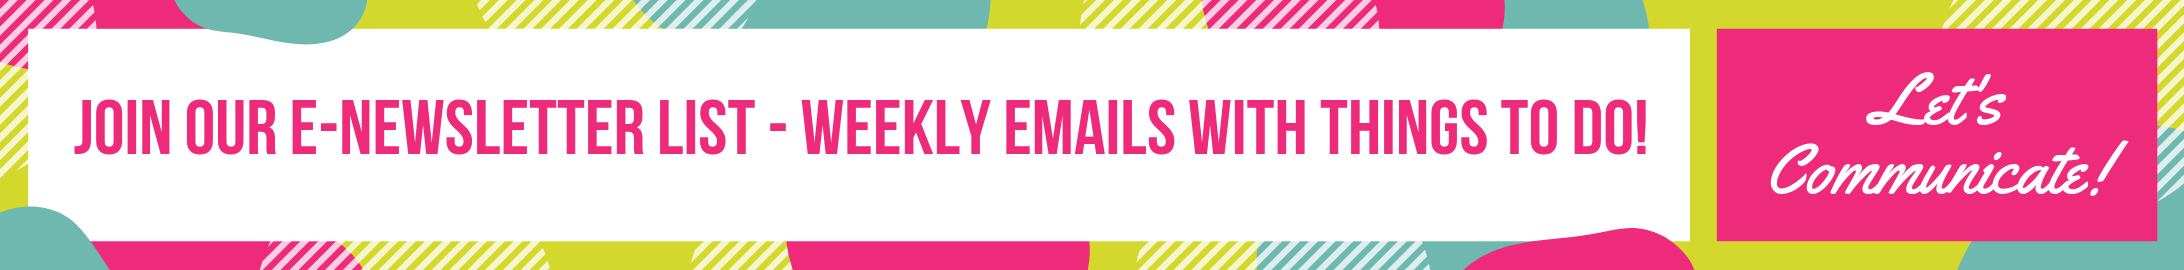 Join our E-newsletter list